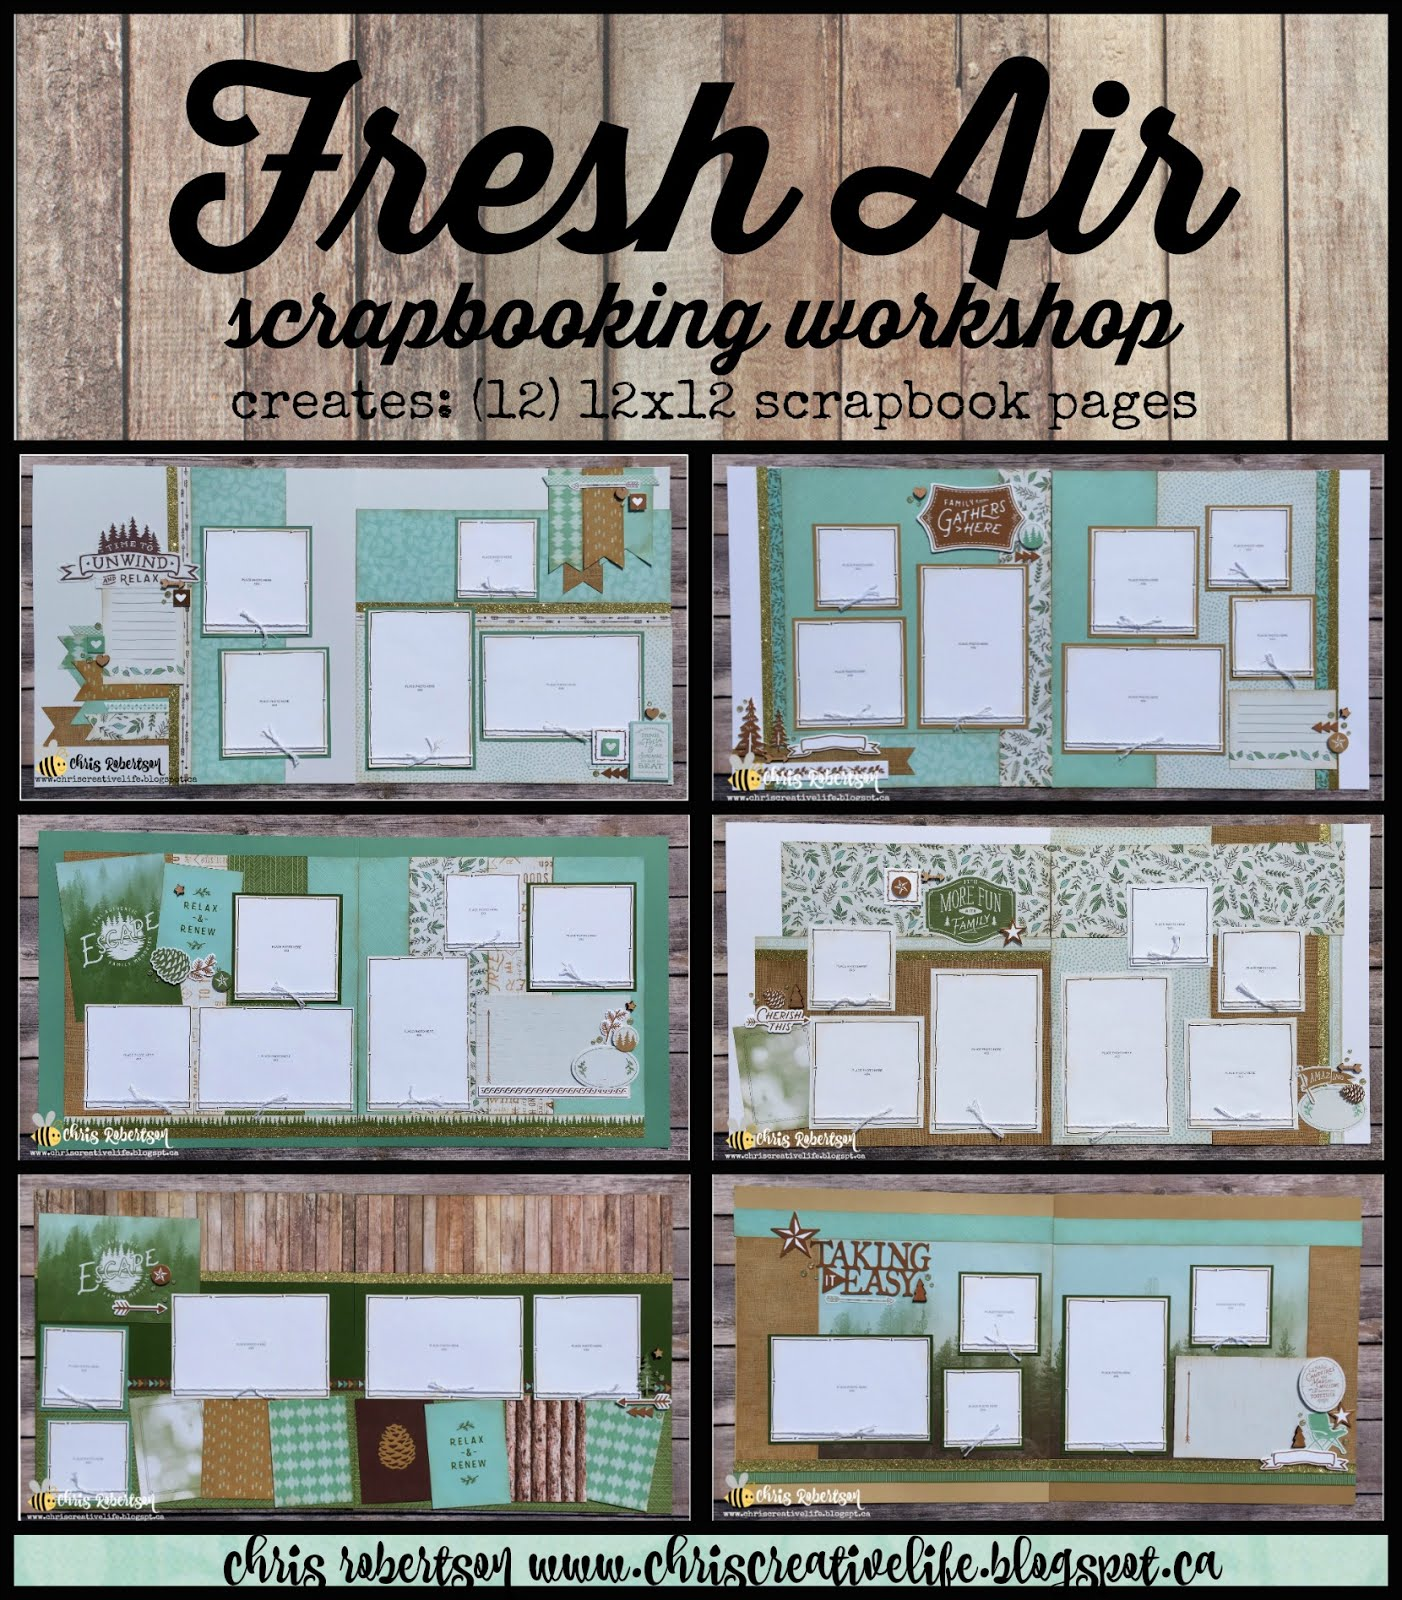 Fresh Air Scrapbooking Workshop